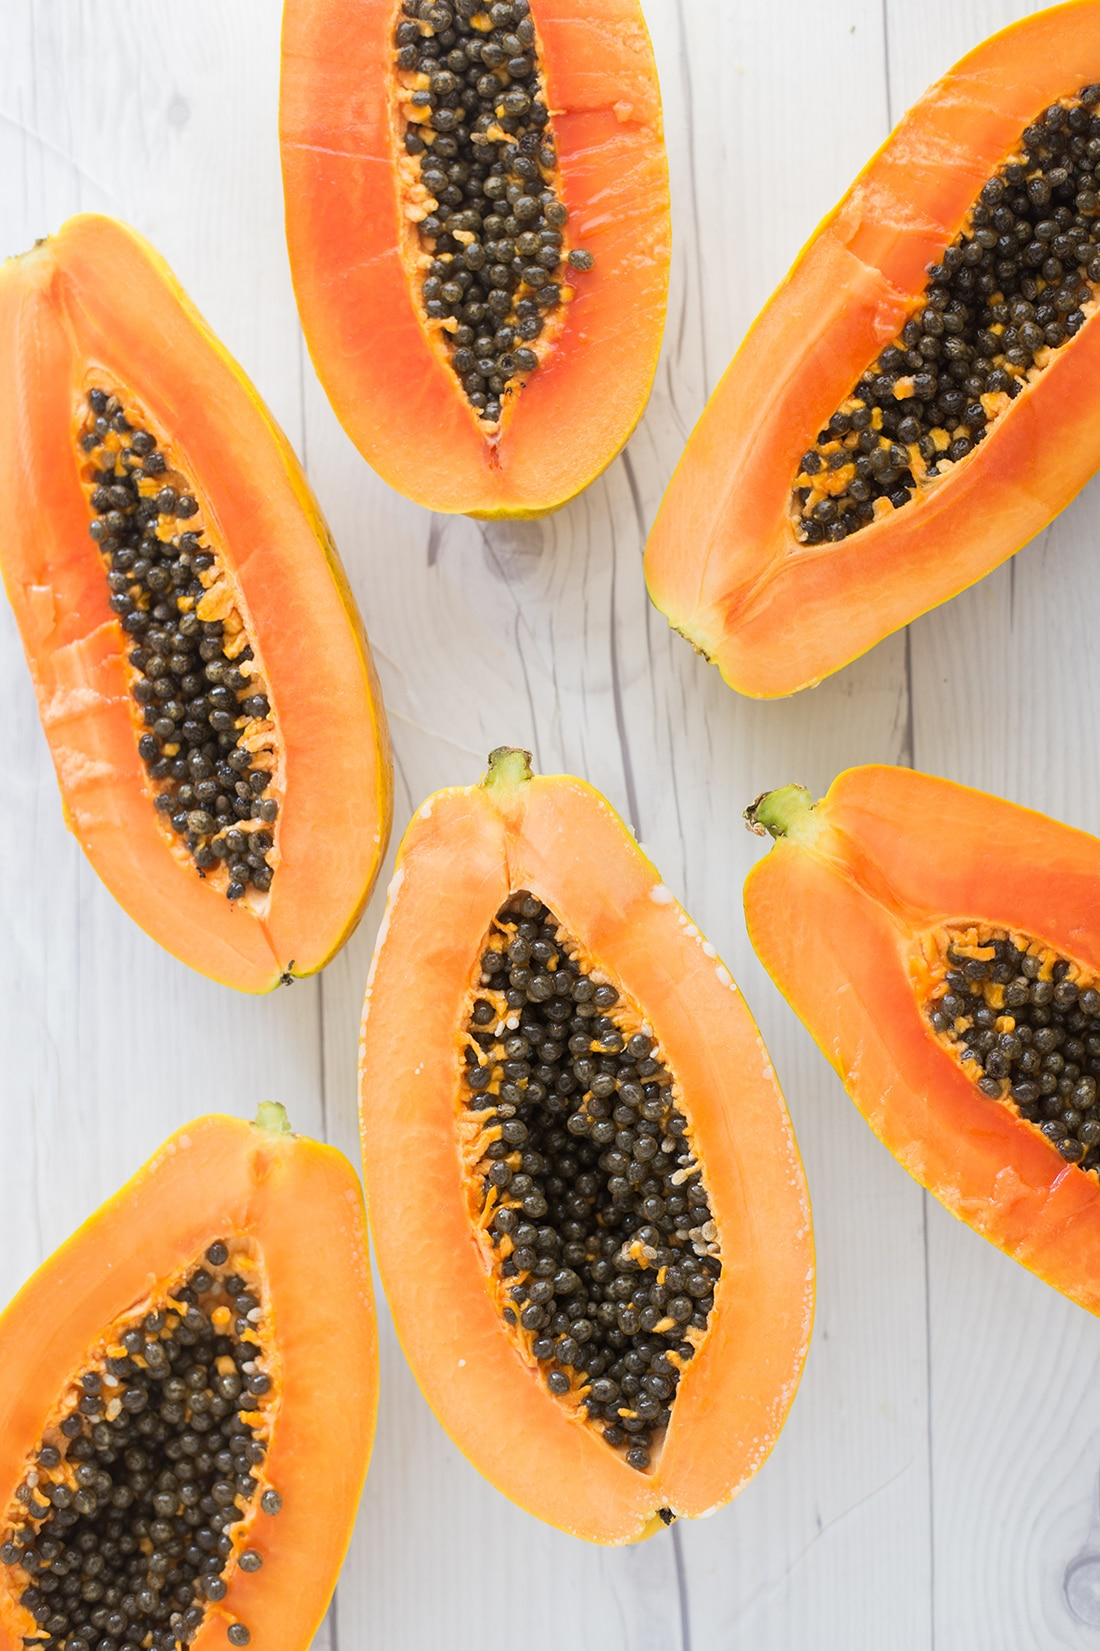 papaya halves on a white wood background.